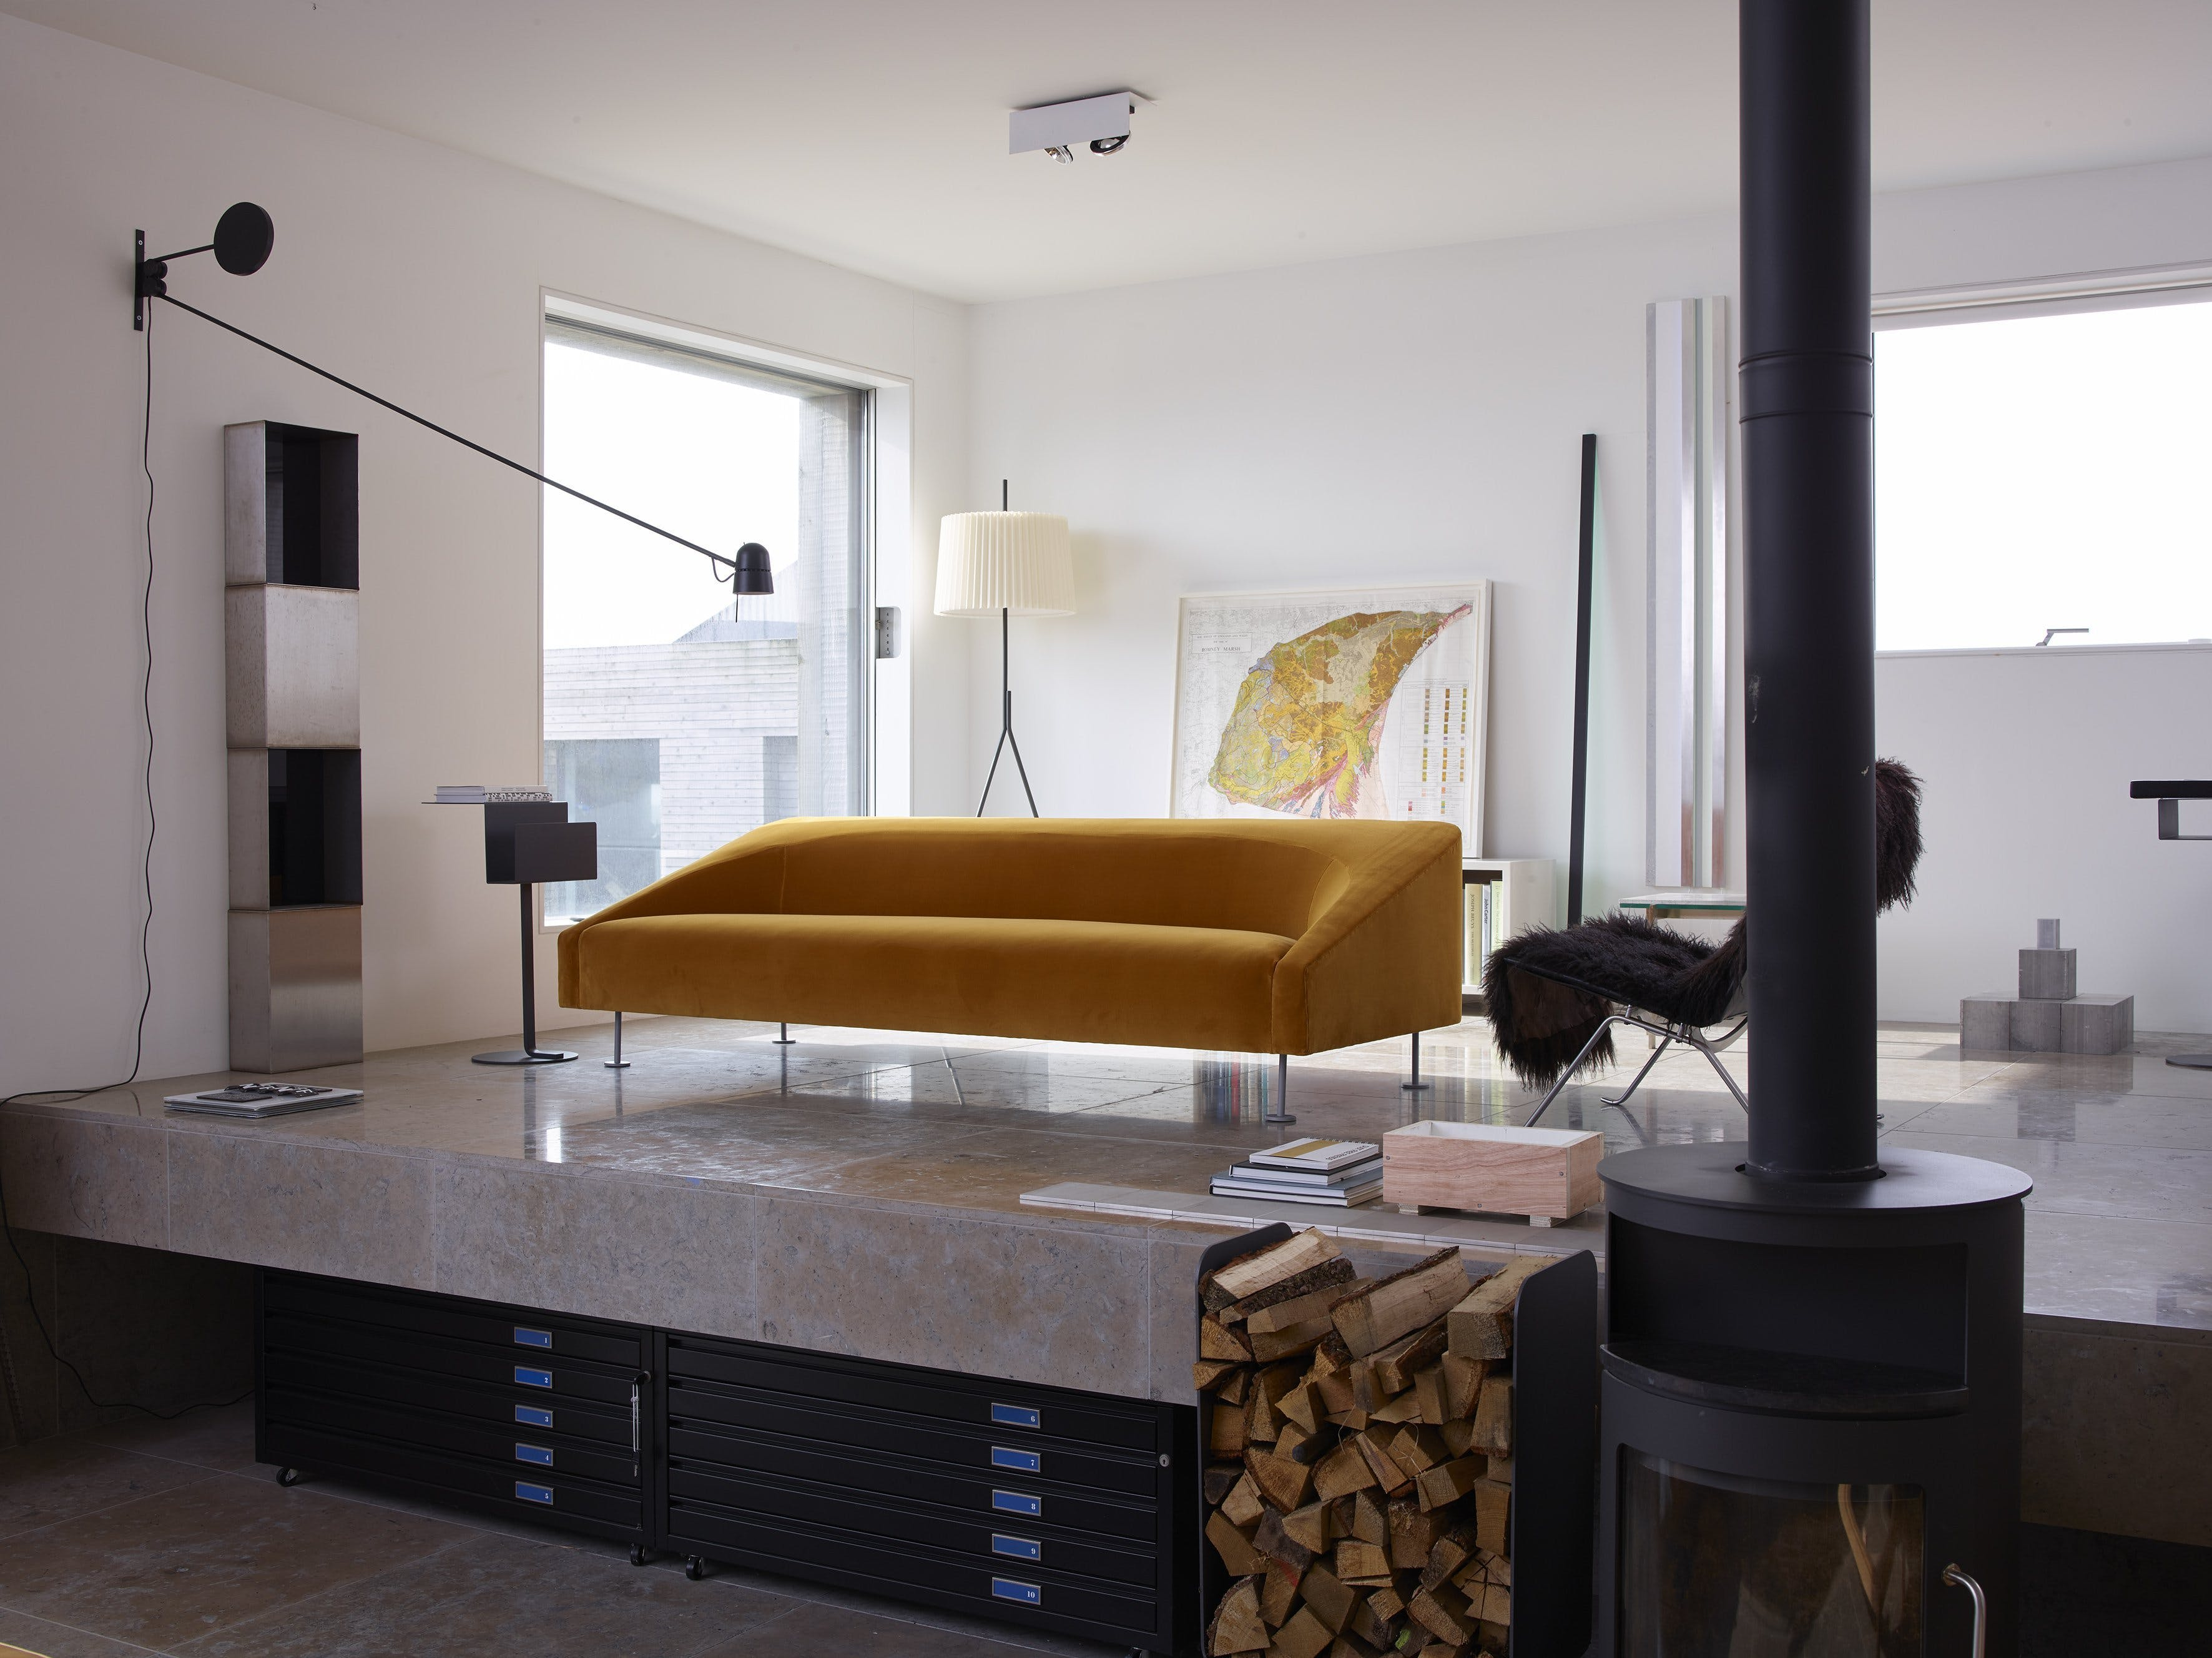 Linear Sofa By Terence Woodgate For Scp In Designers Guild Varese 1